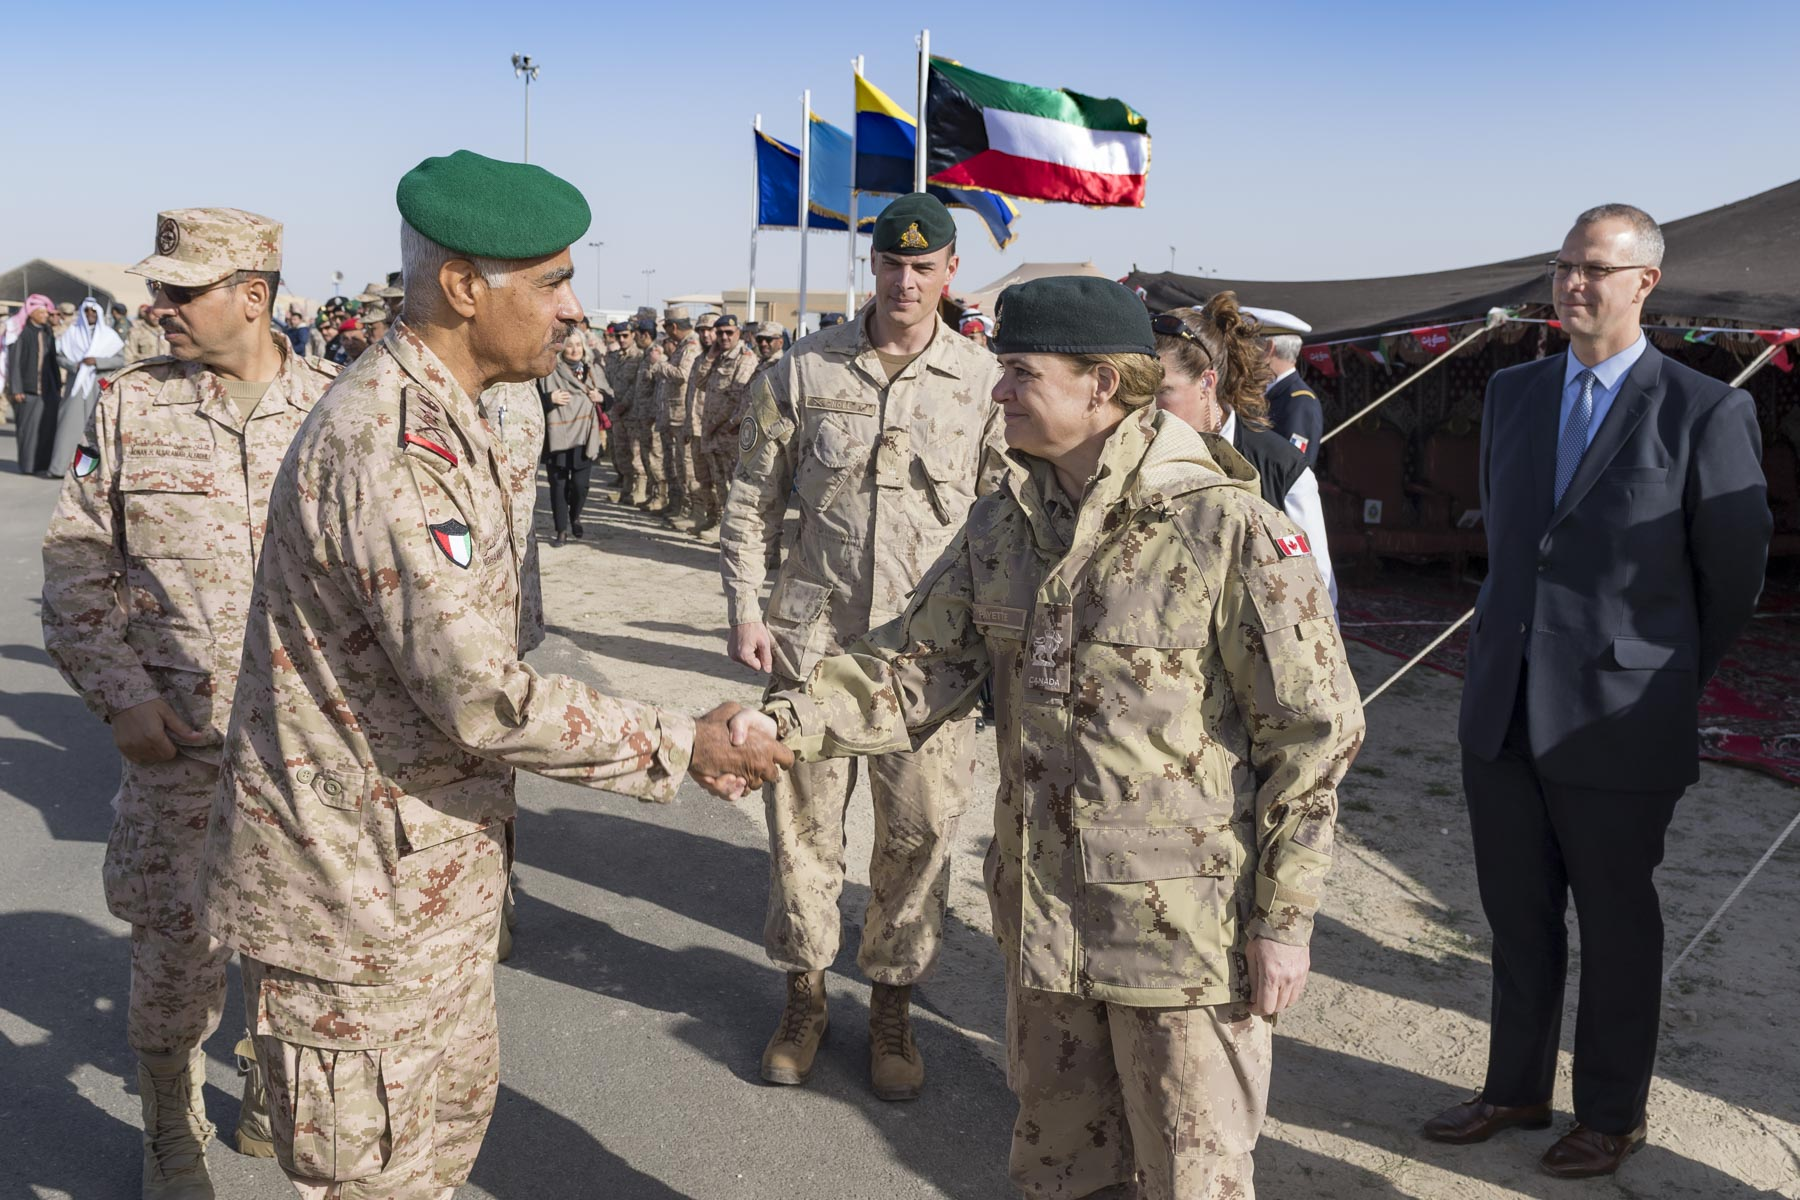 Visit to Kuwait and Iraq | The Governor General of Canada